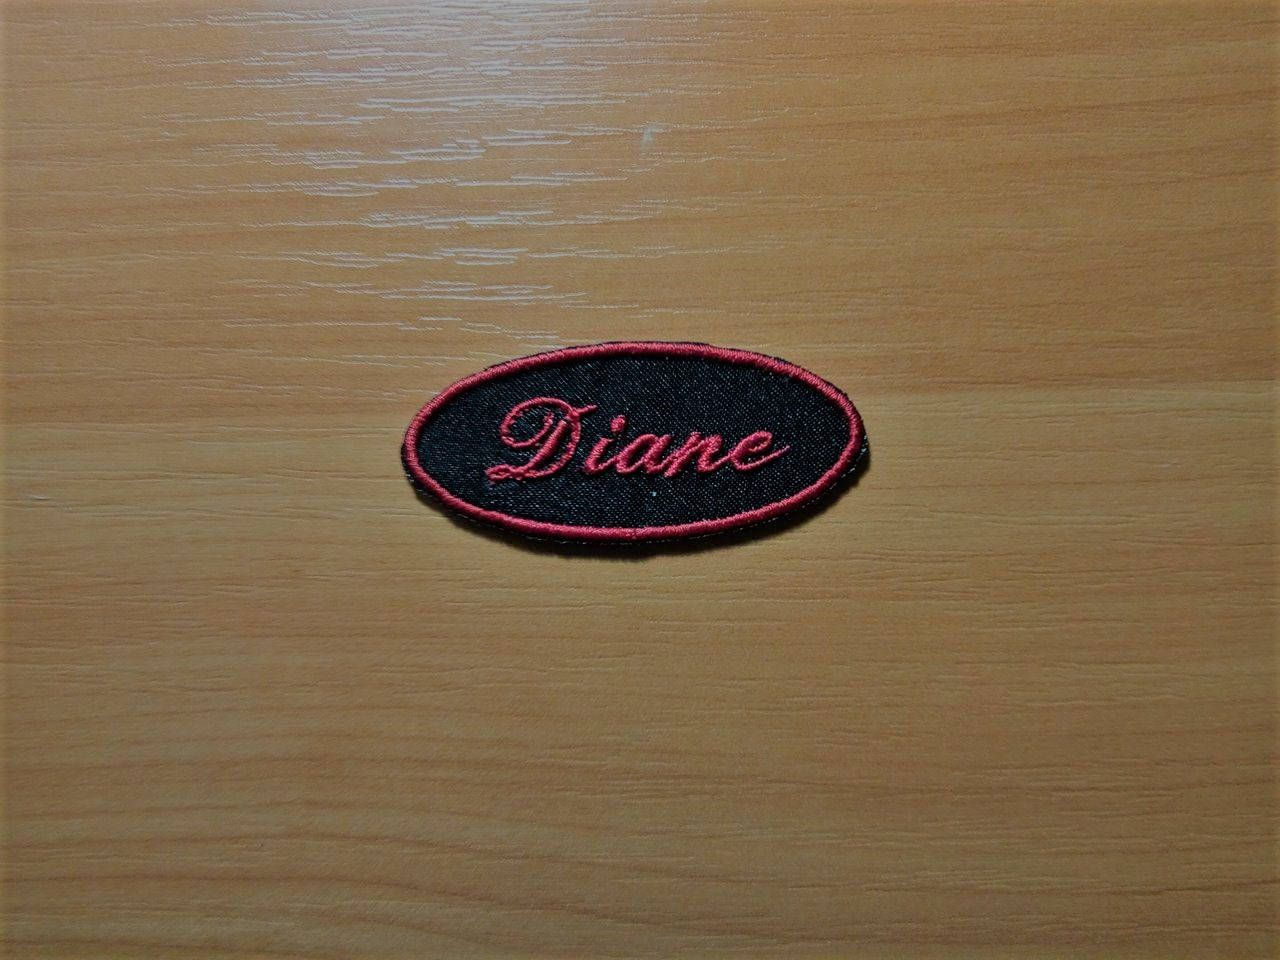 Custom Embroidered Name Patch, Iron on Name Patch, Name Tag, Sew on Name  Patch, Embroidered Name Tag